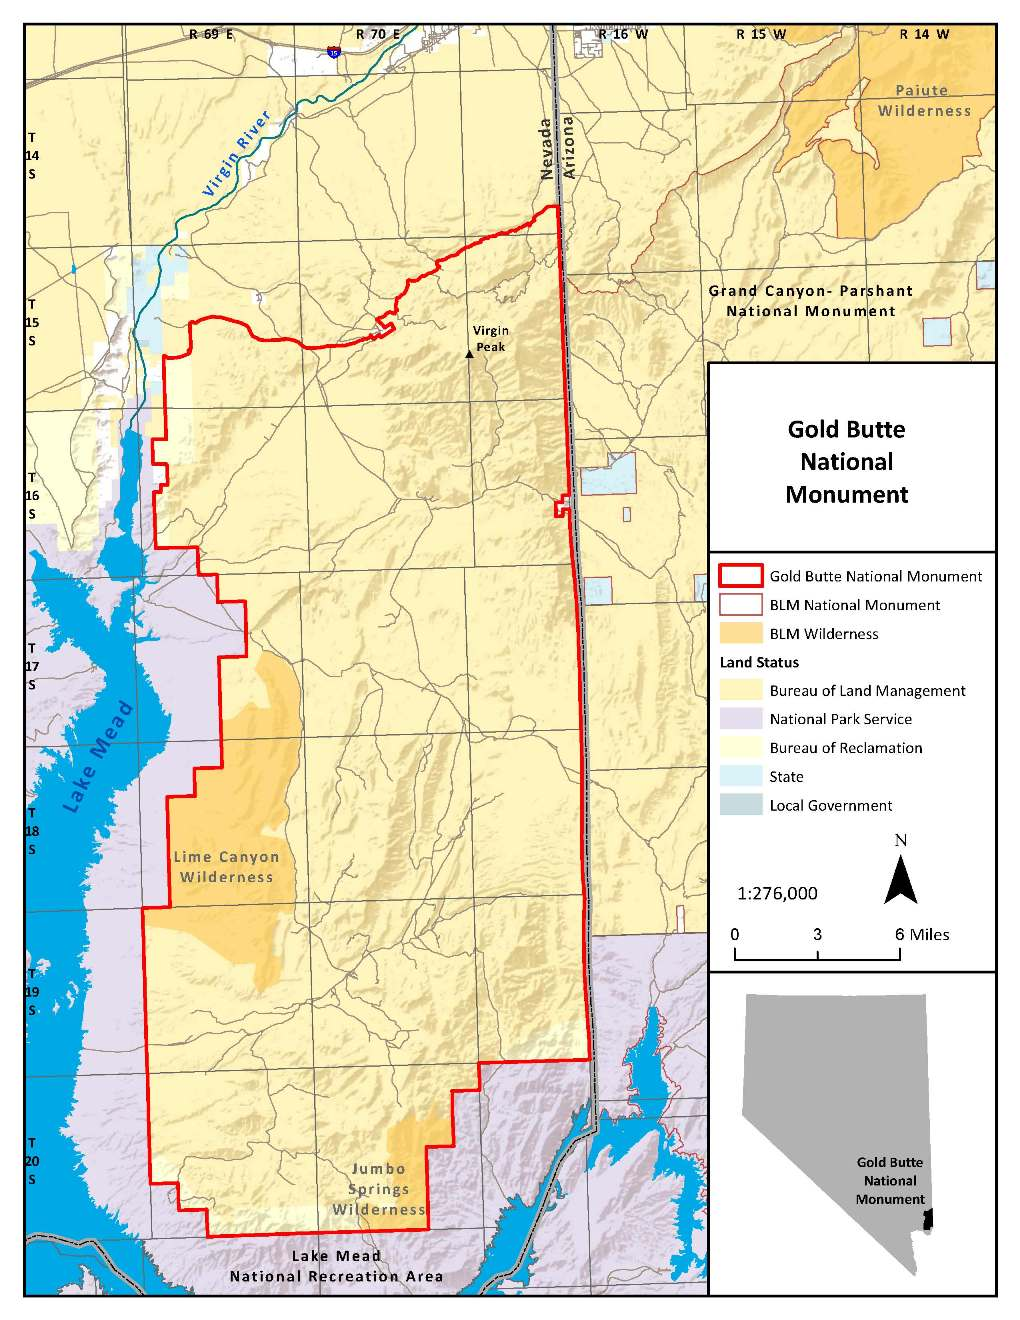 gold-butte-national-monument-map